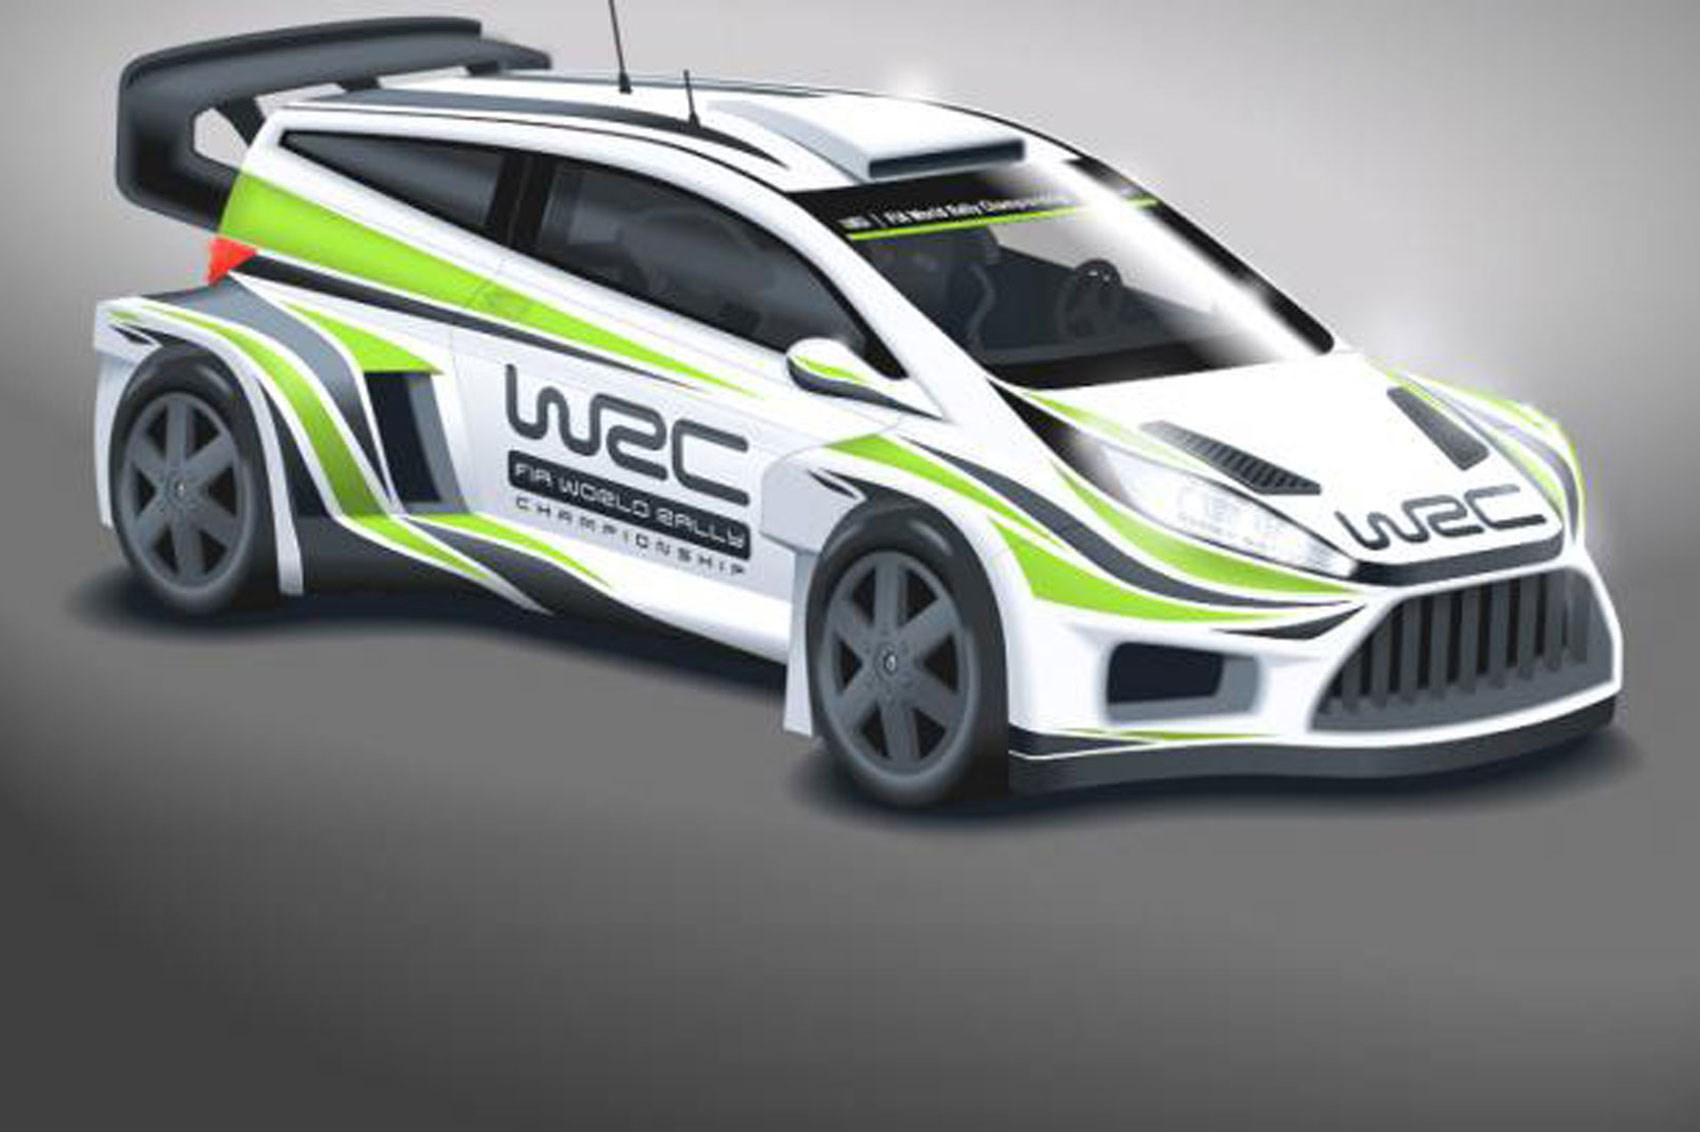 Ultrablogus  Pleasing Wild New Look For Wrc Cars In  By Car Magazine With Interesting Wrc Cars Will Get Wider Bodies Bigger Wings And More Power For  With Archaic Rav Interior Dimensions Also  Honda Crv Interior In Addition Peugeot  Interior And Classic Mustang Interior As Well As Cuda Interior Additionally G Amg Interior From Carmagazinecouk With Ultrablogus  Interesting Wild New Look For Wrc Cars In  By Car Magazine With Archaic Wrc Cars Will Get Wider Bodies Bigger Wings And More Power For  And Pleasing Rav Interior Dimensions Also  Honda Crv Interior In Addition Peugeot  Interior From Carmagazinecouk